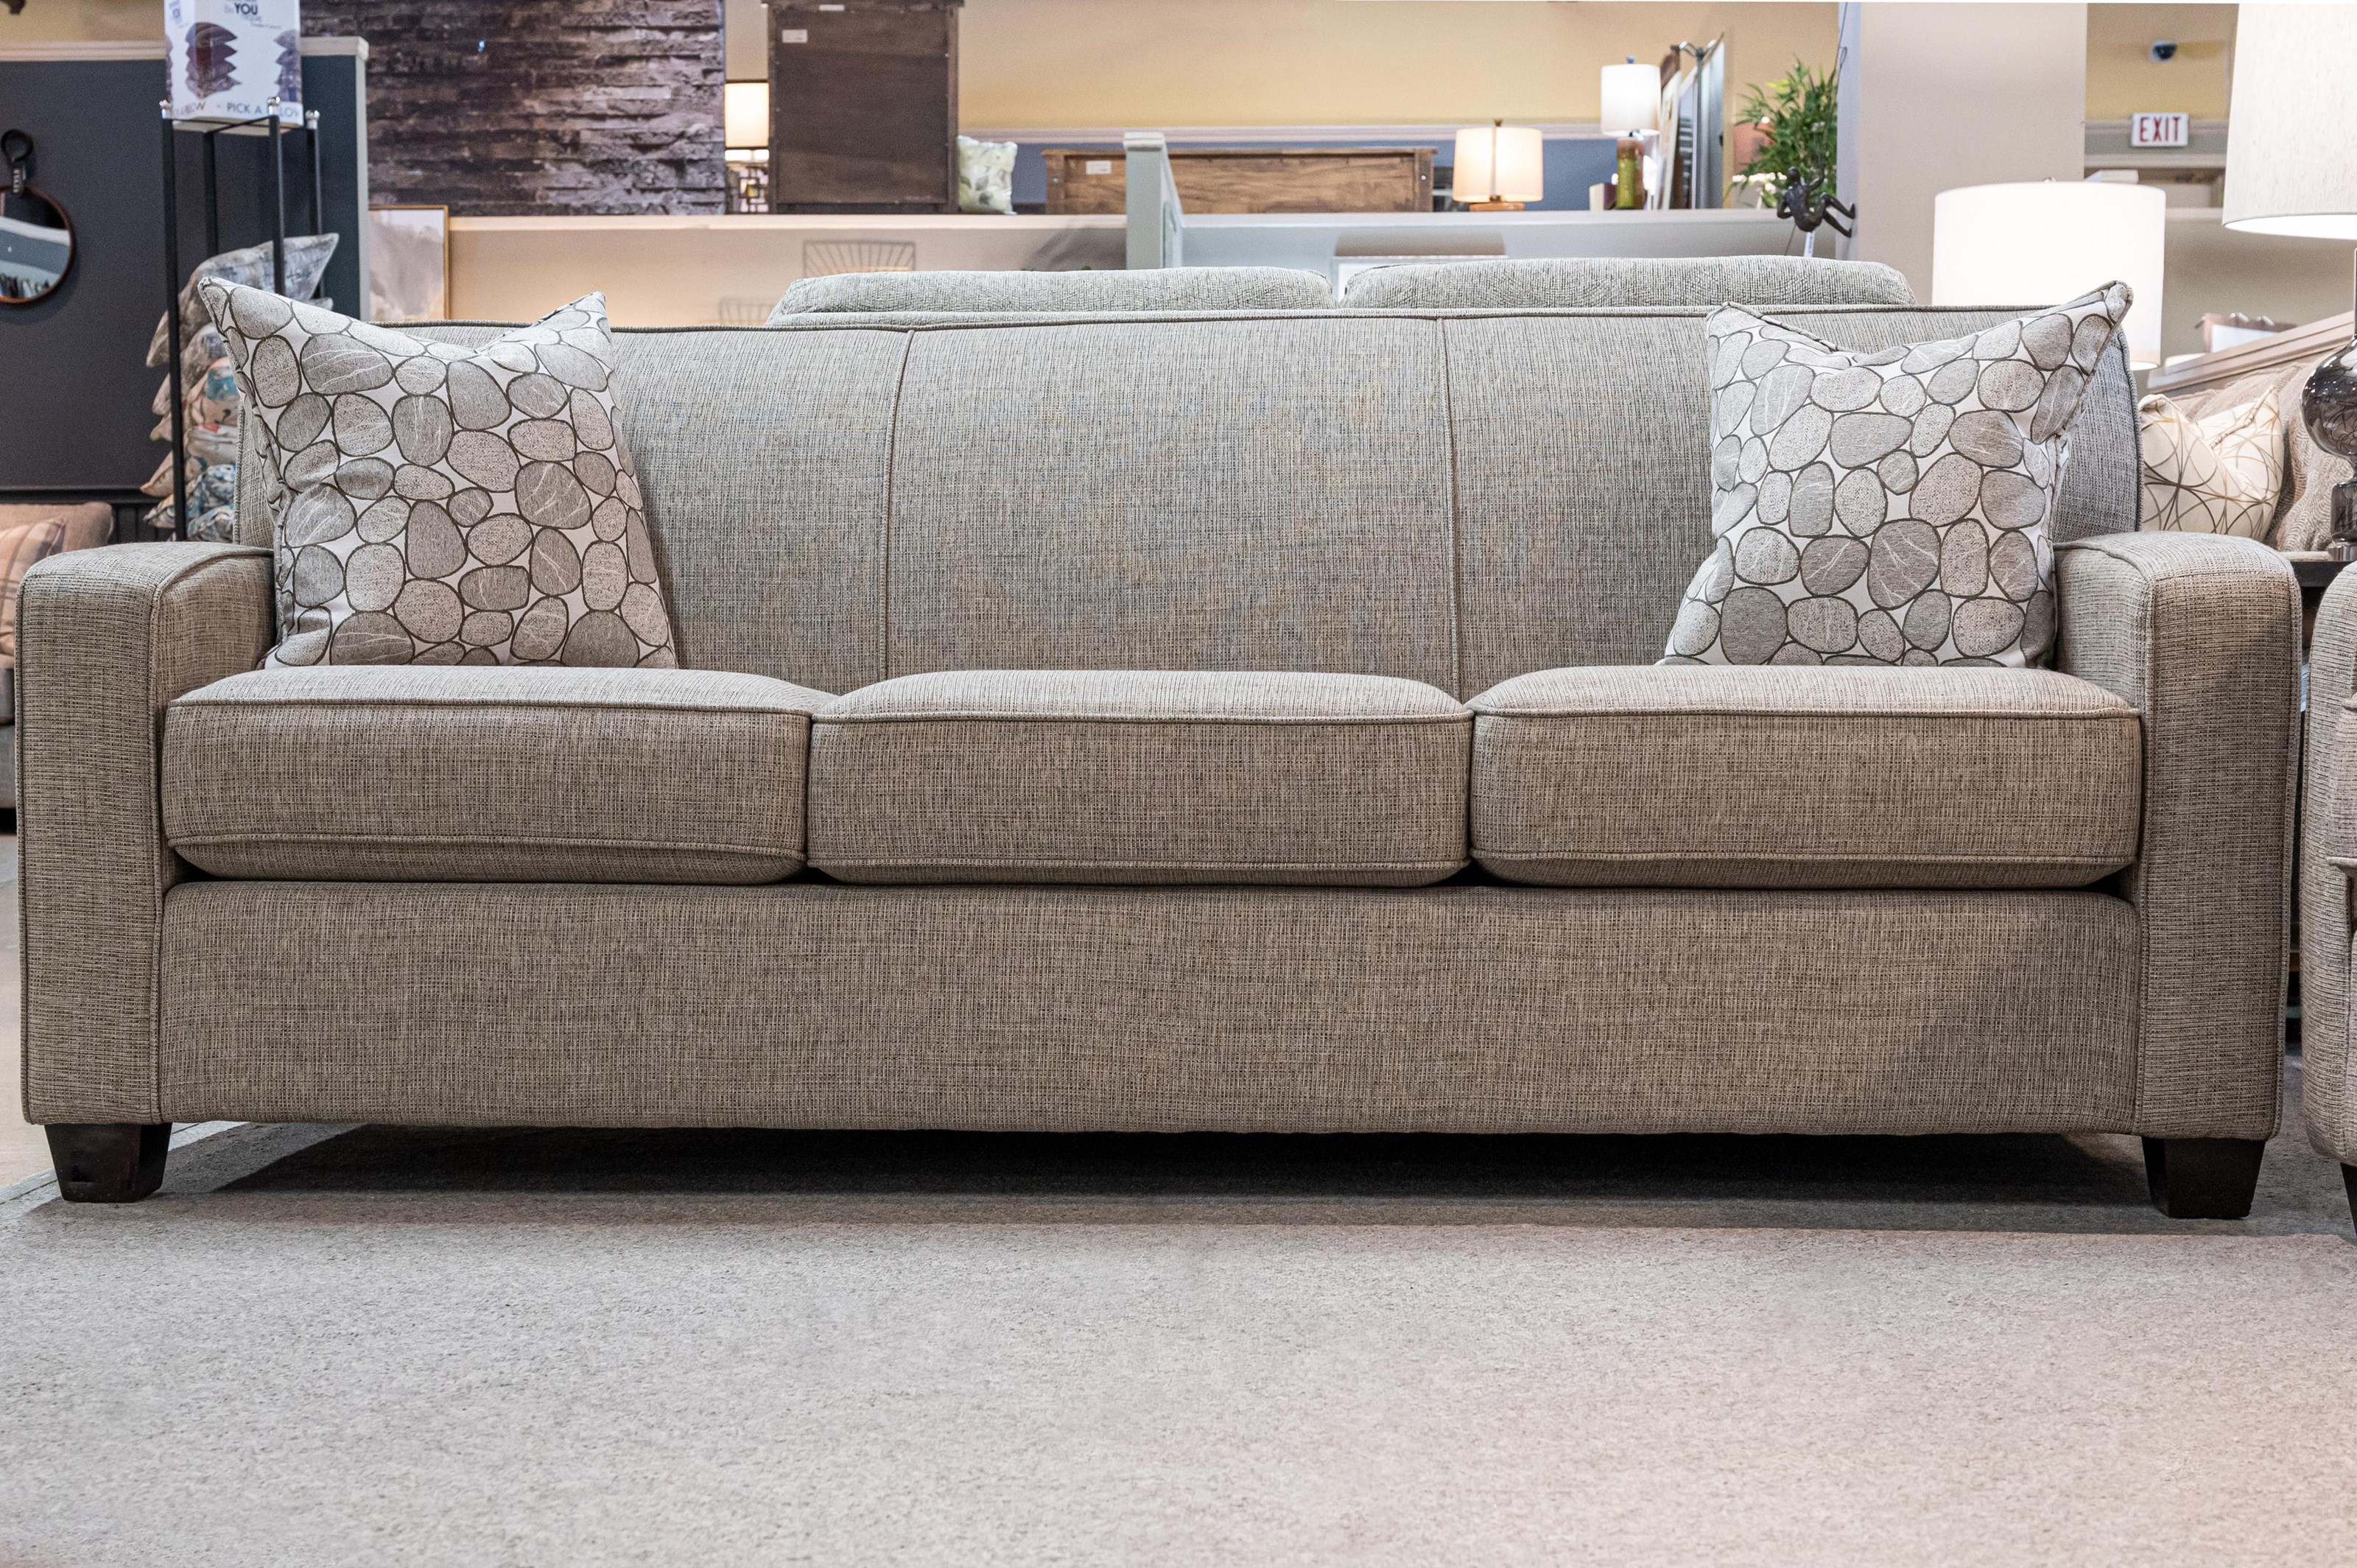 2401 Stationary Sofa by Decor-Rest at Stoney Creek Furniture